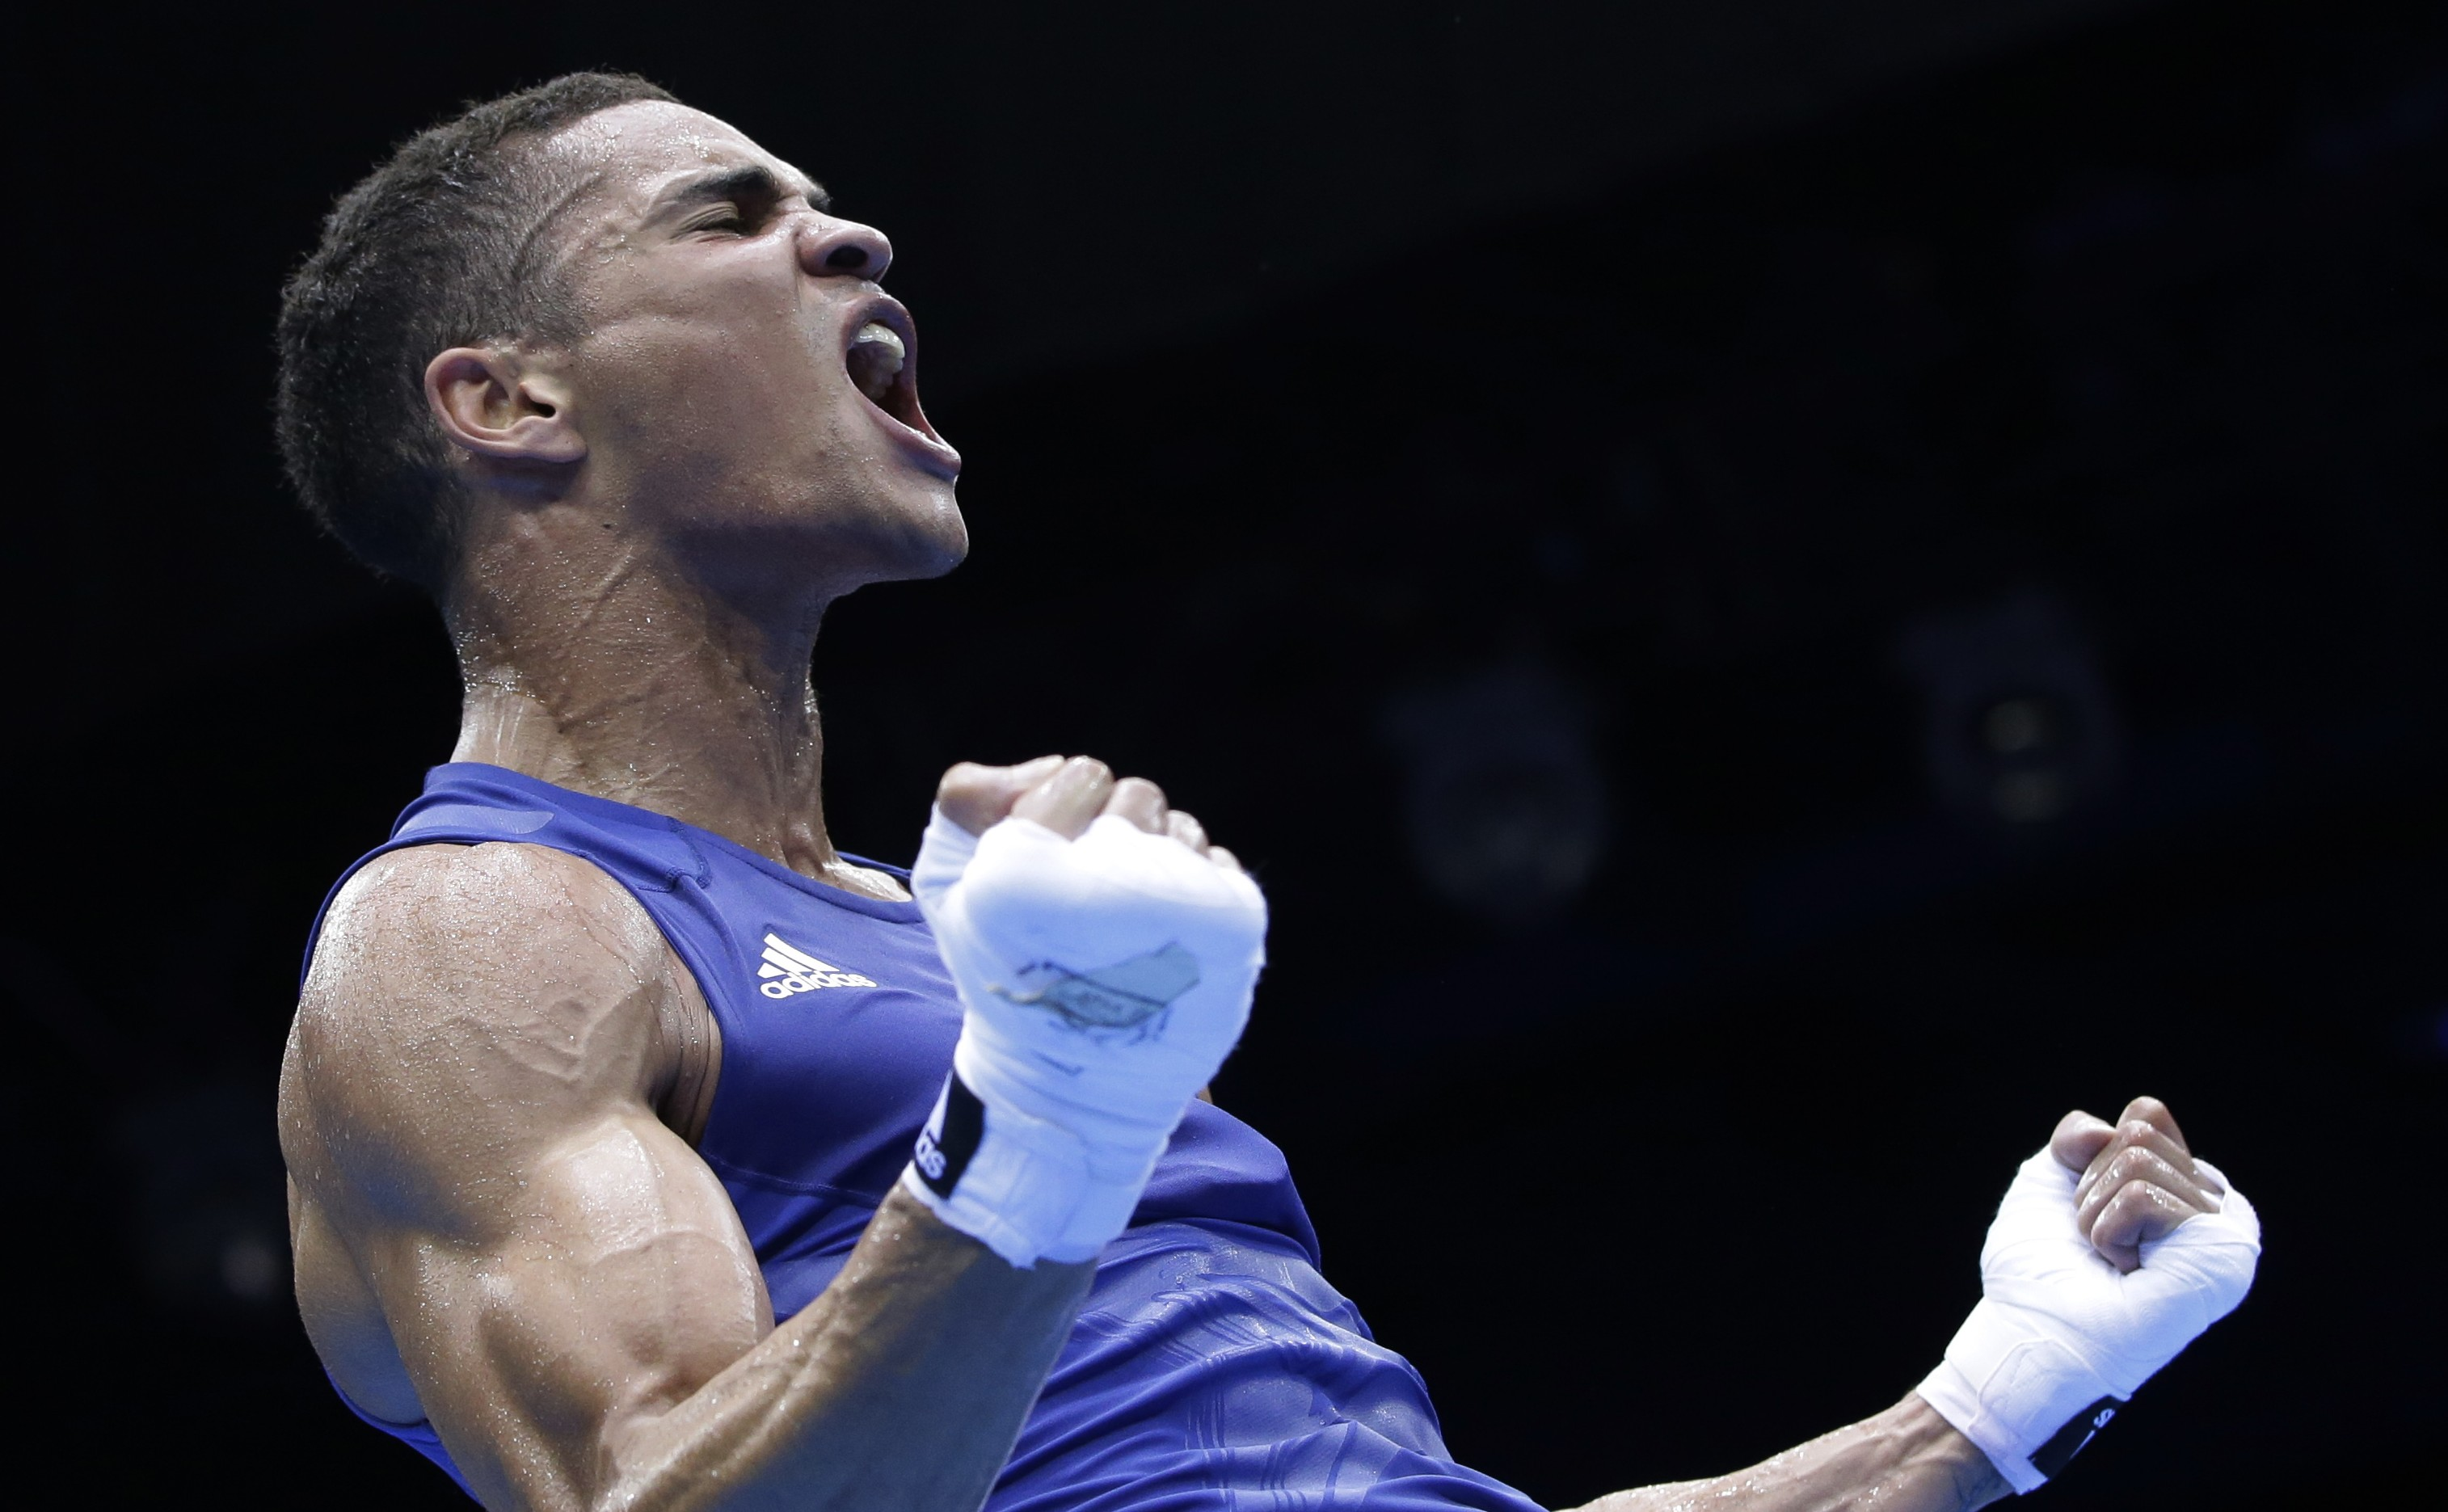 Anthony Ogogo turns his back on Rio 2016 Olympics to sign lucrative professional deal